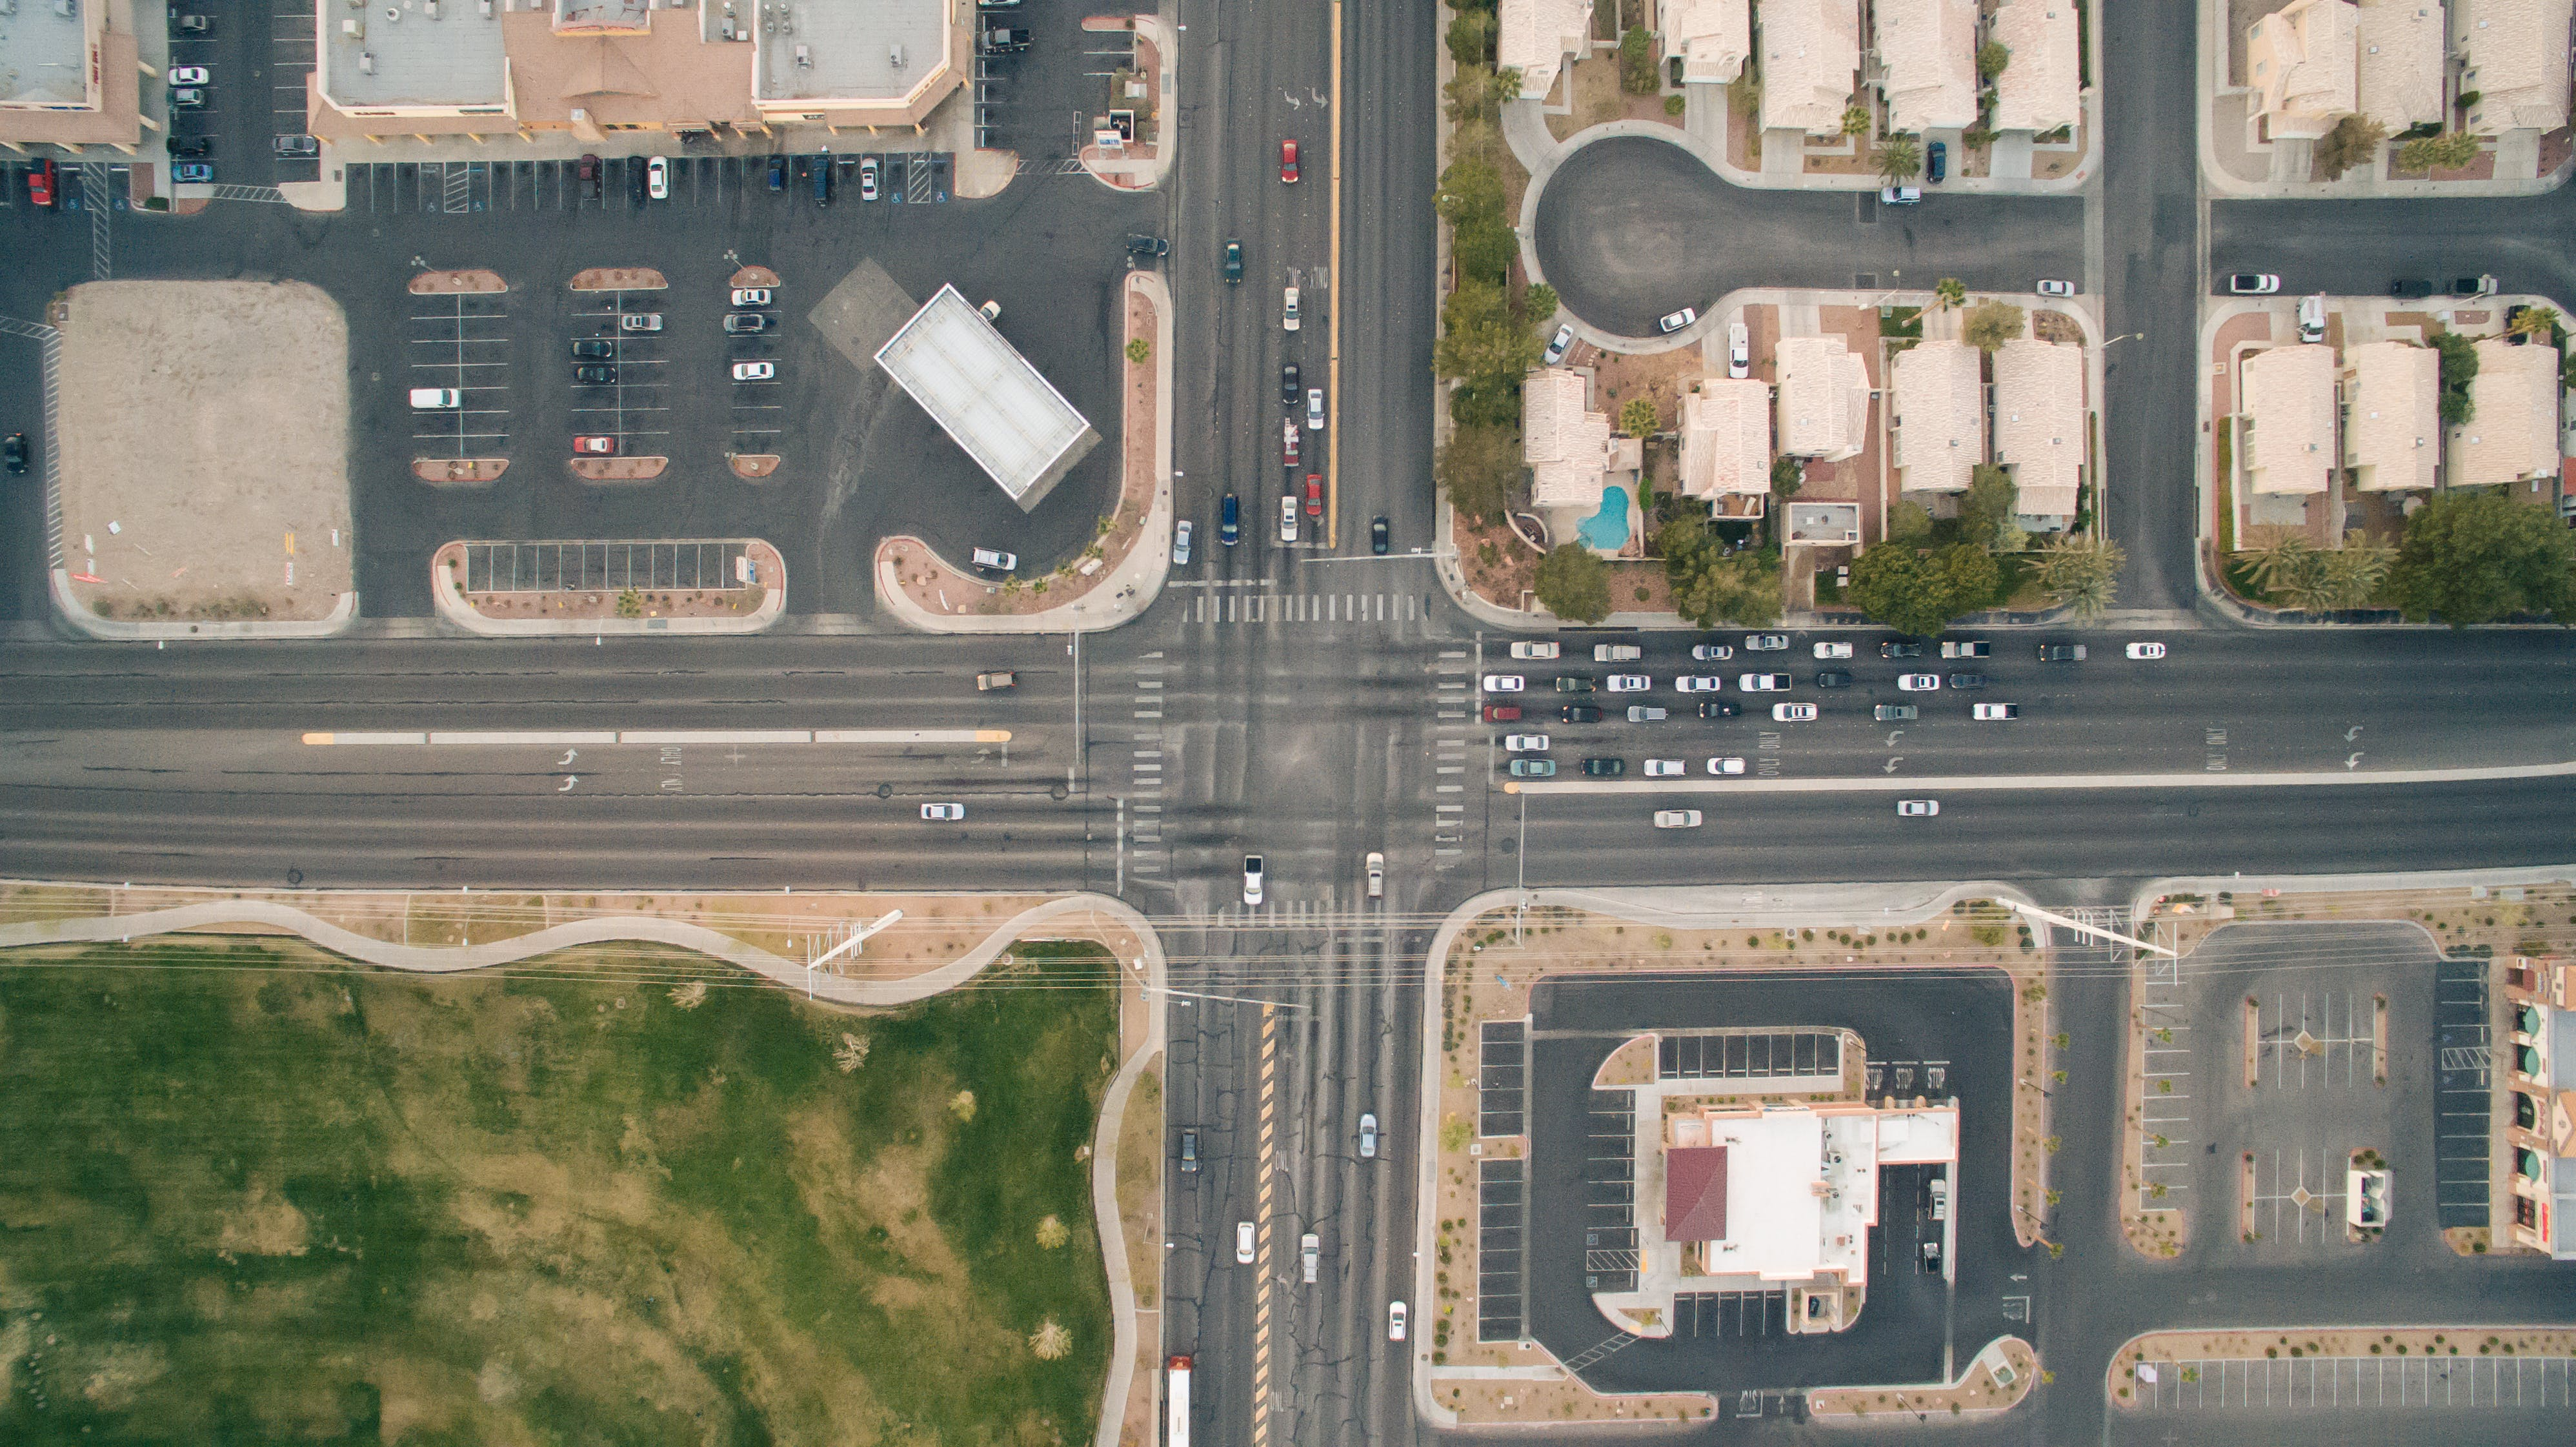 Aerial Photography of Road Intersection